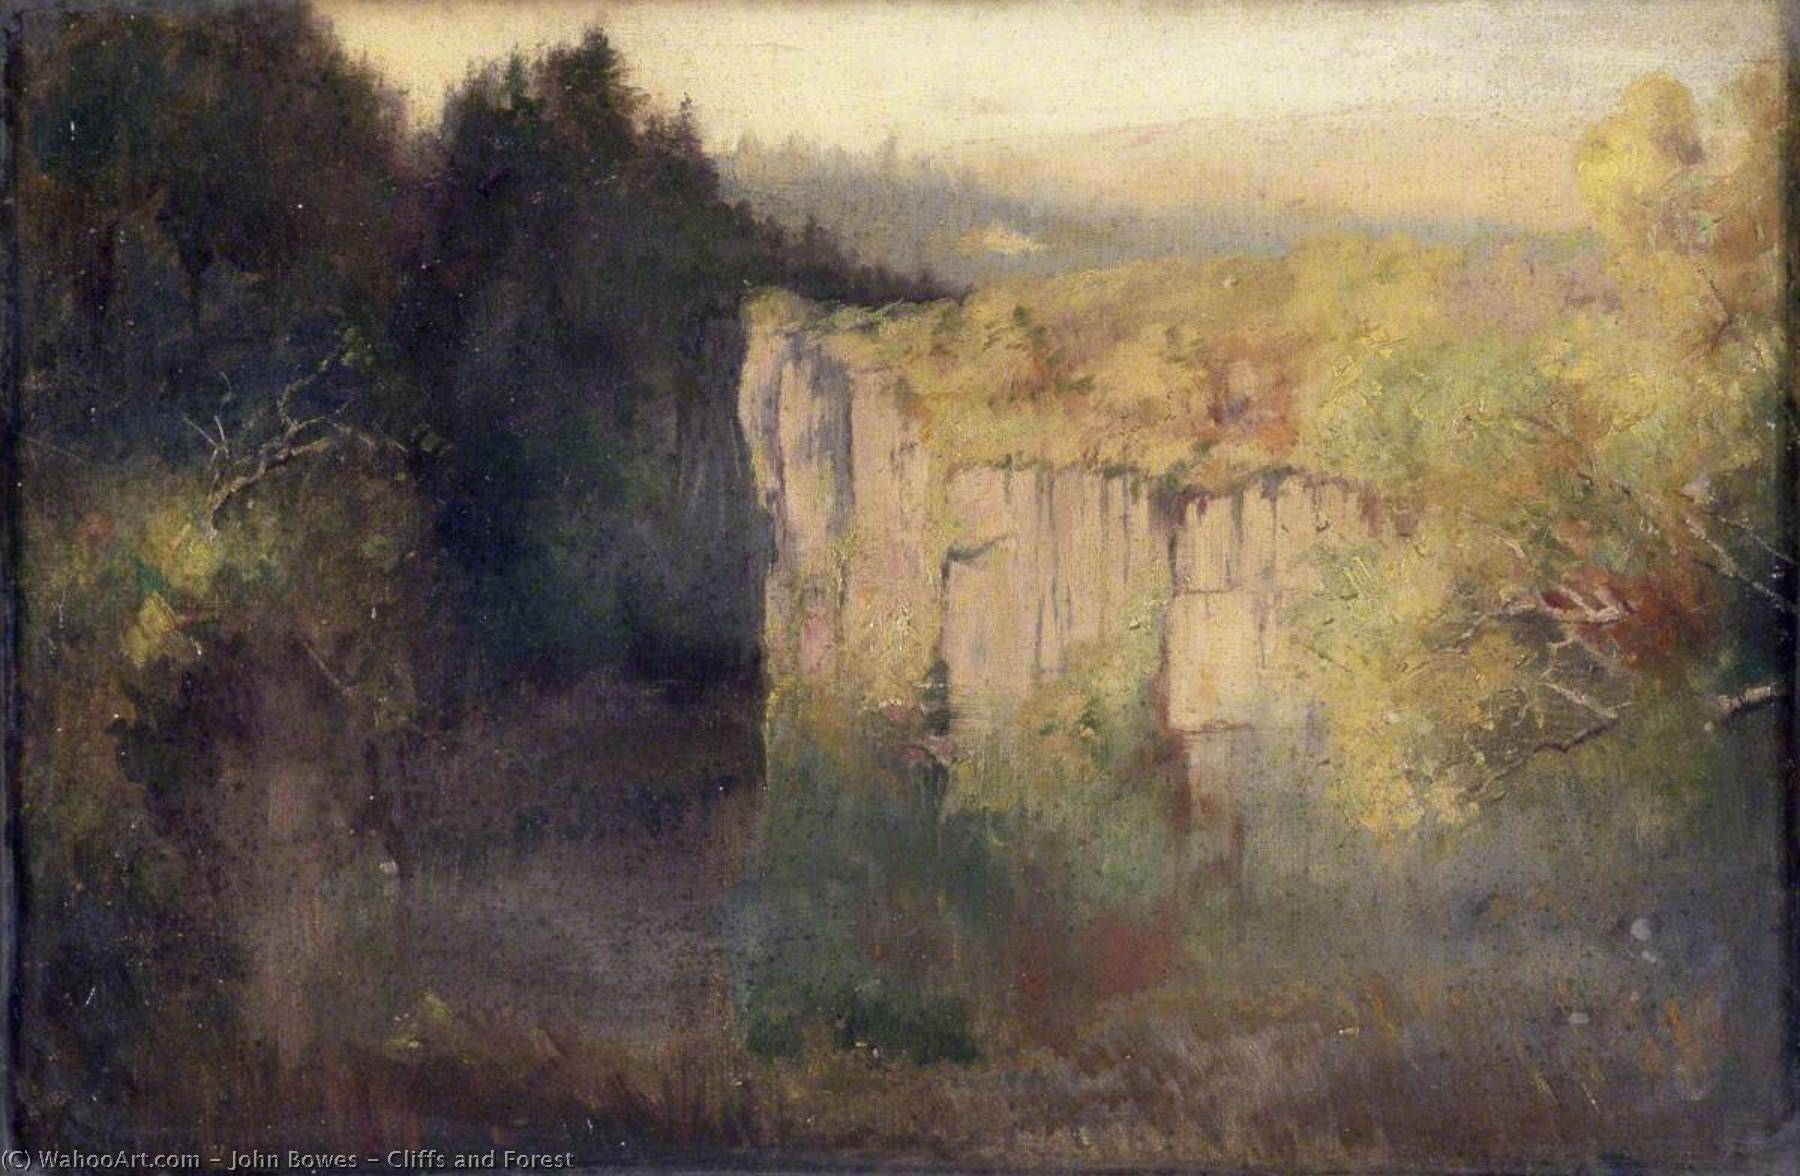 Cliffs and Forest, Oil On Canvas by John Bowes